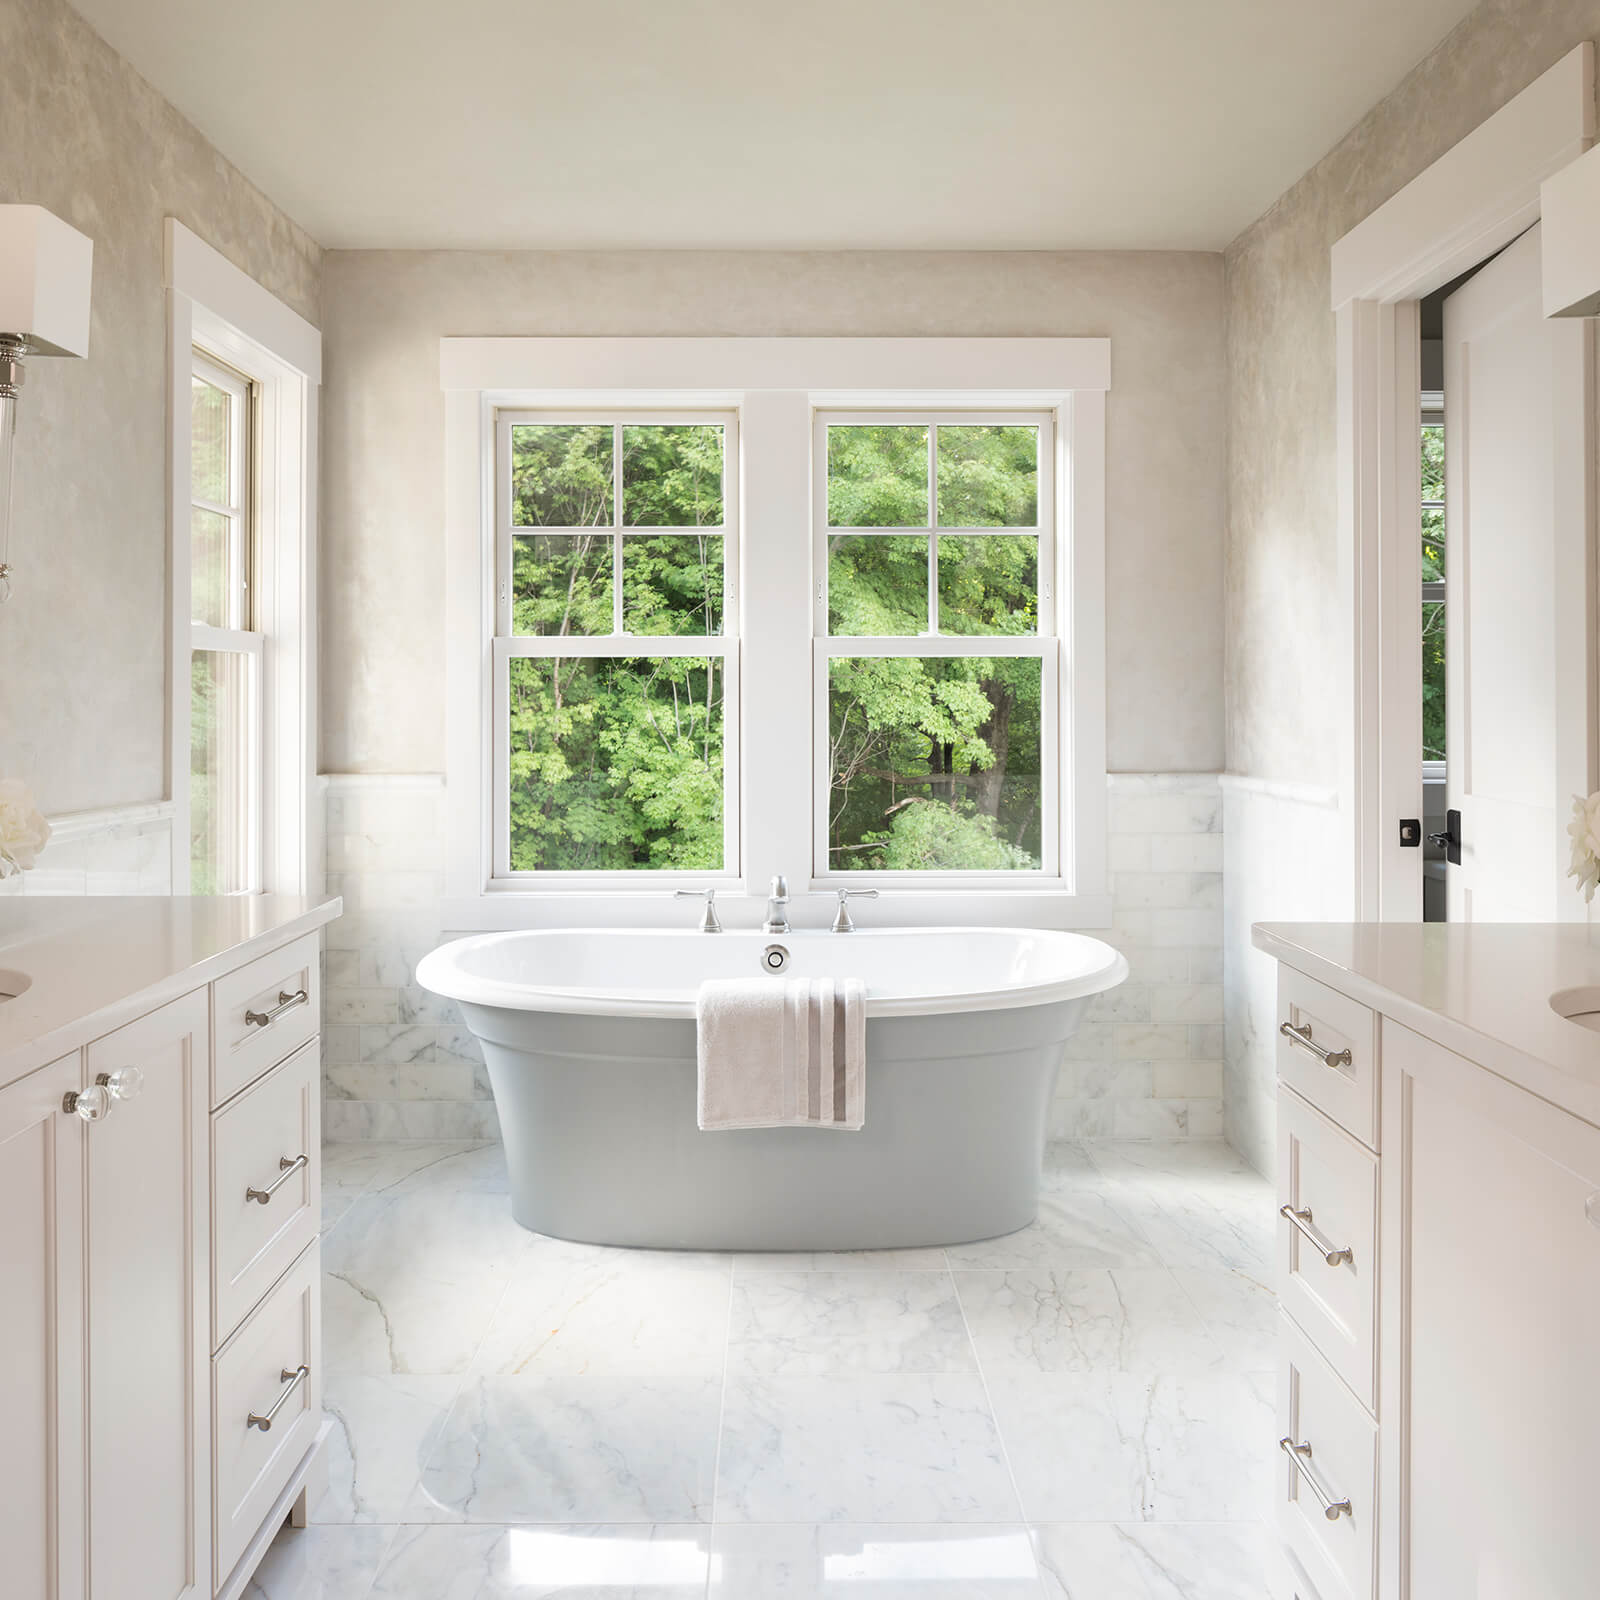 Large bathroom with Marvin Elevate Double Hung Windows